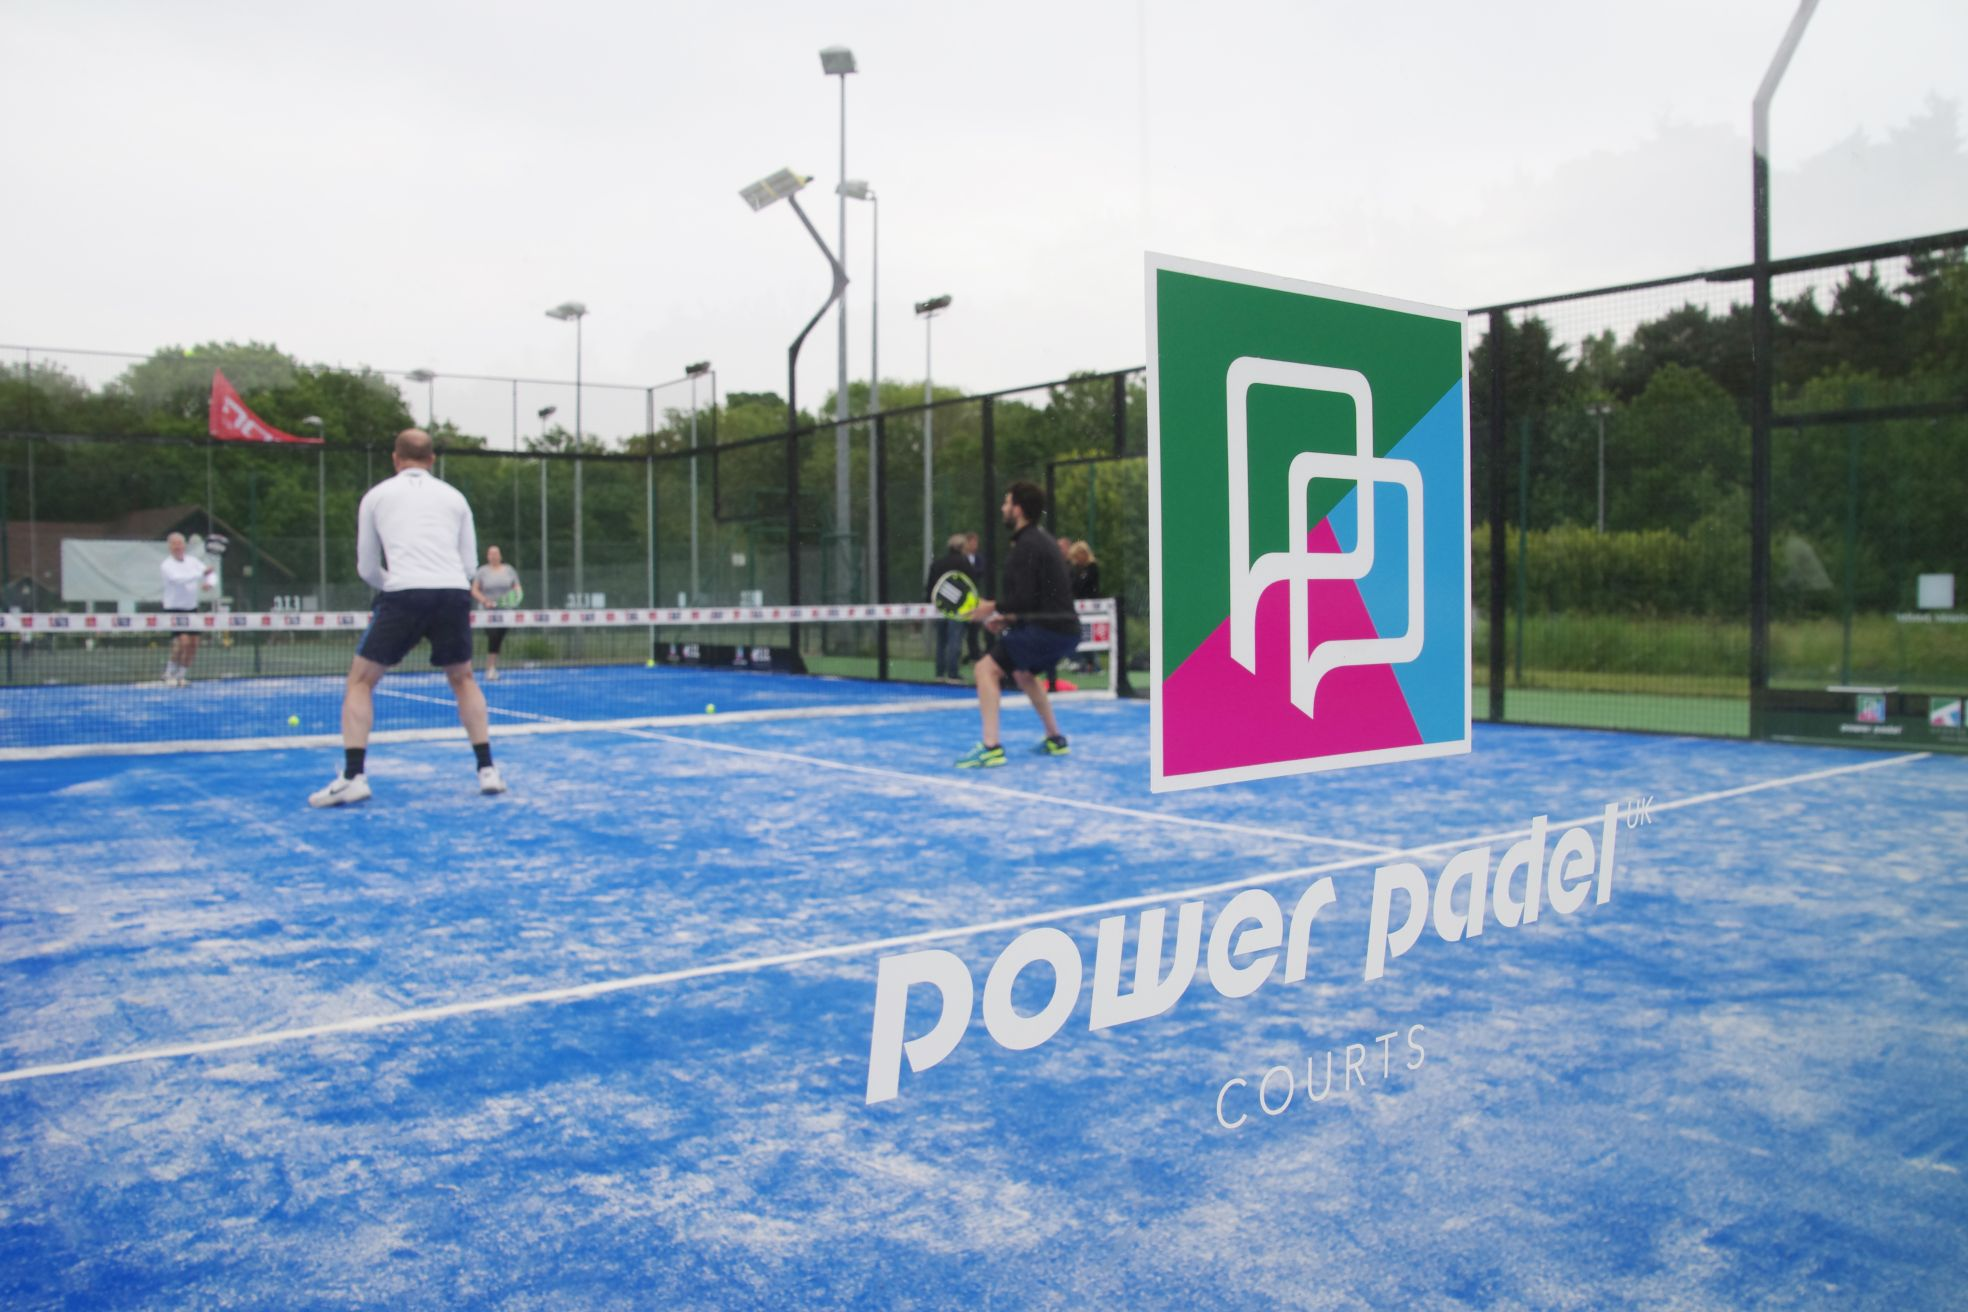 ETC Sports Surfaces is the only UK main contractor authorised to supply and install Power Padel tennis court constructions.